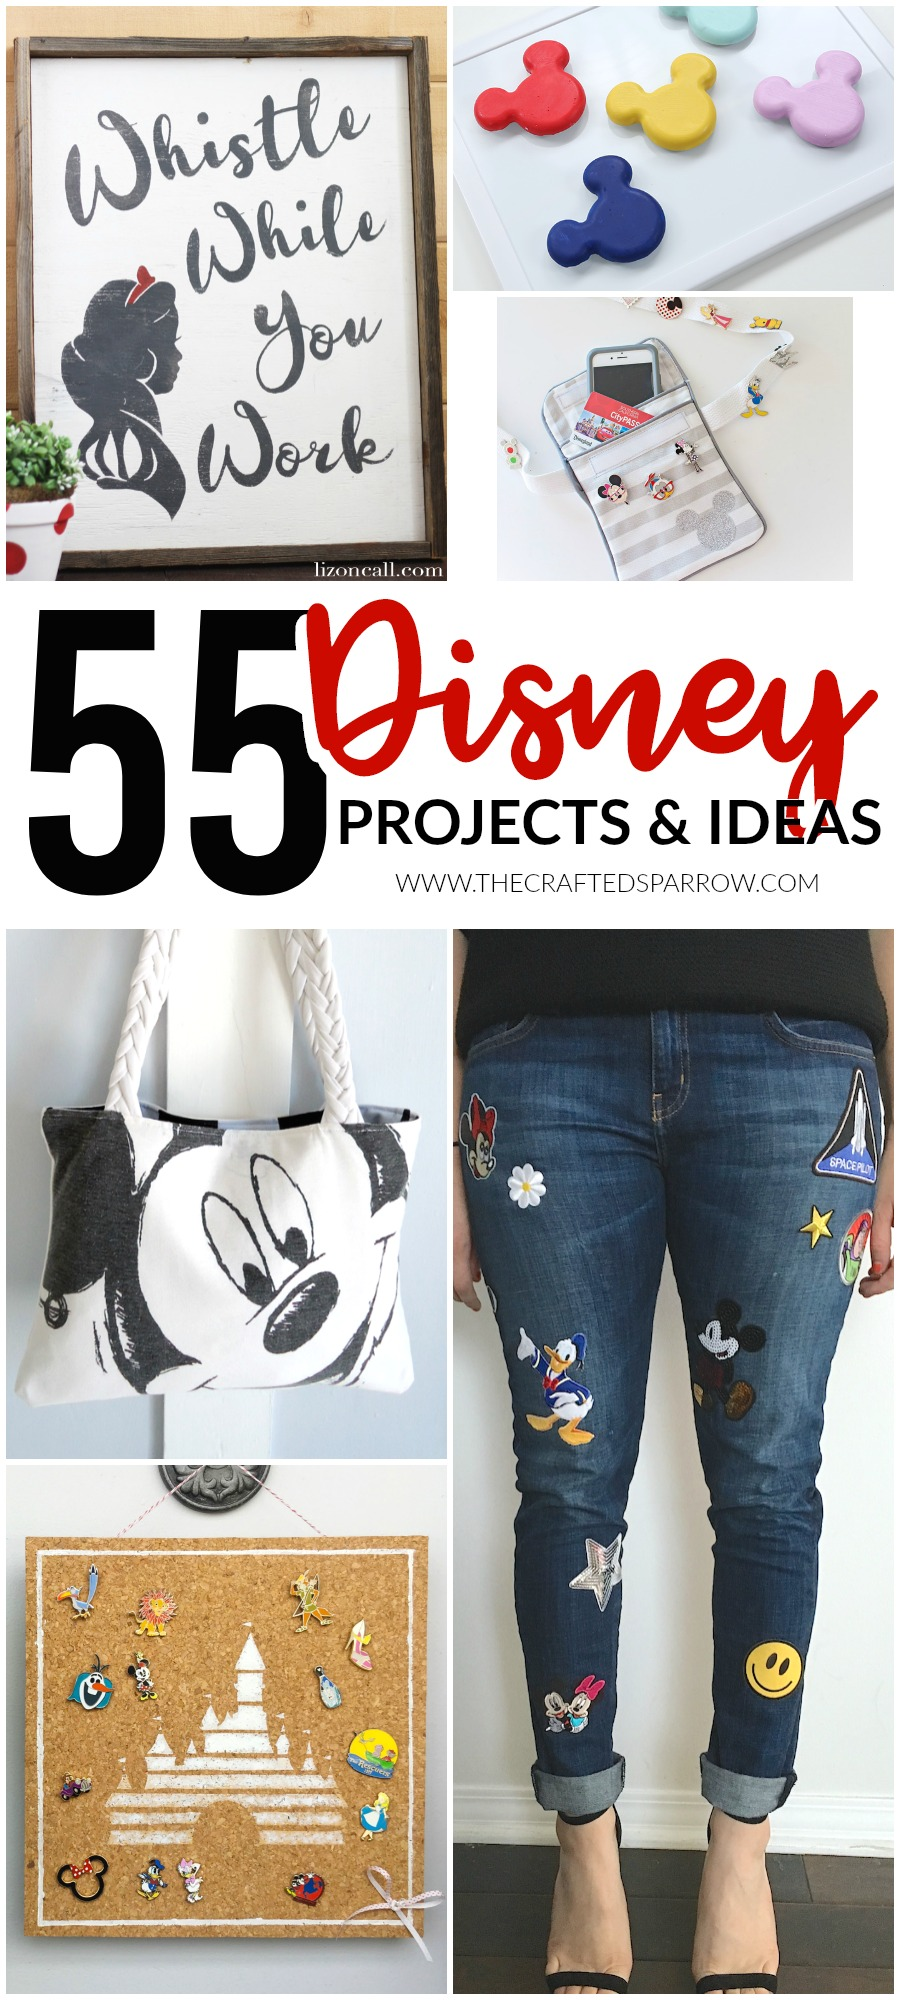 a8b7b5aaf 55 Disney Projects & Ideas